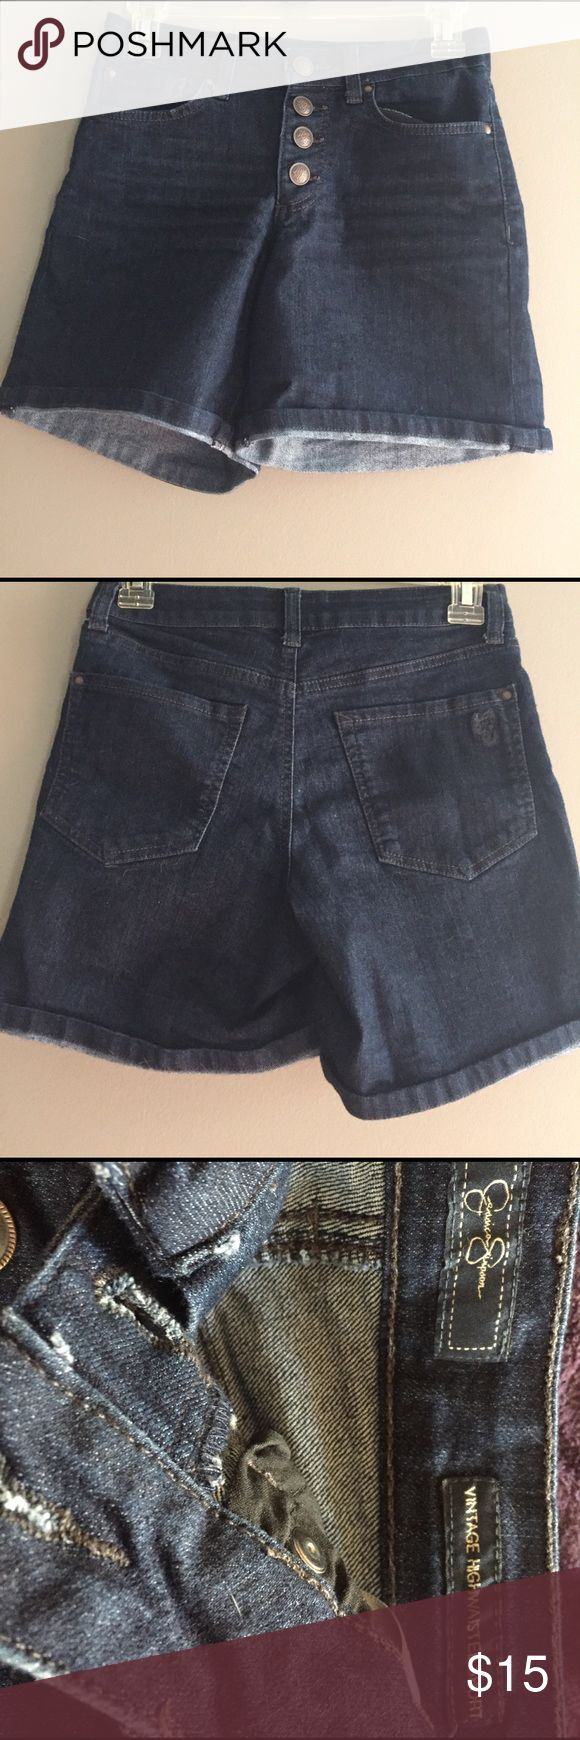 Jessica Simpson denim shorts Very cute Jessica Simpson button up denim shorts no longer fit in them excellent condition stretchy material and yes I still don't fit in them with stretchy material Jessica Simpson Shorts Jean Shorts